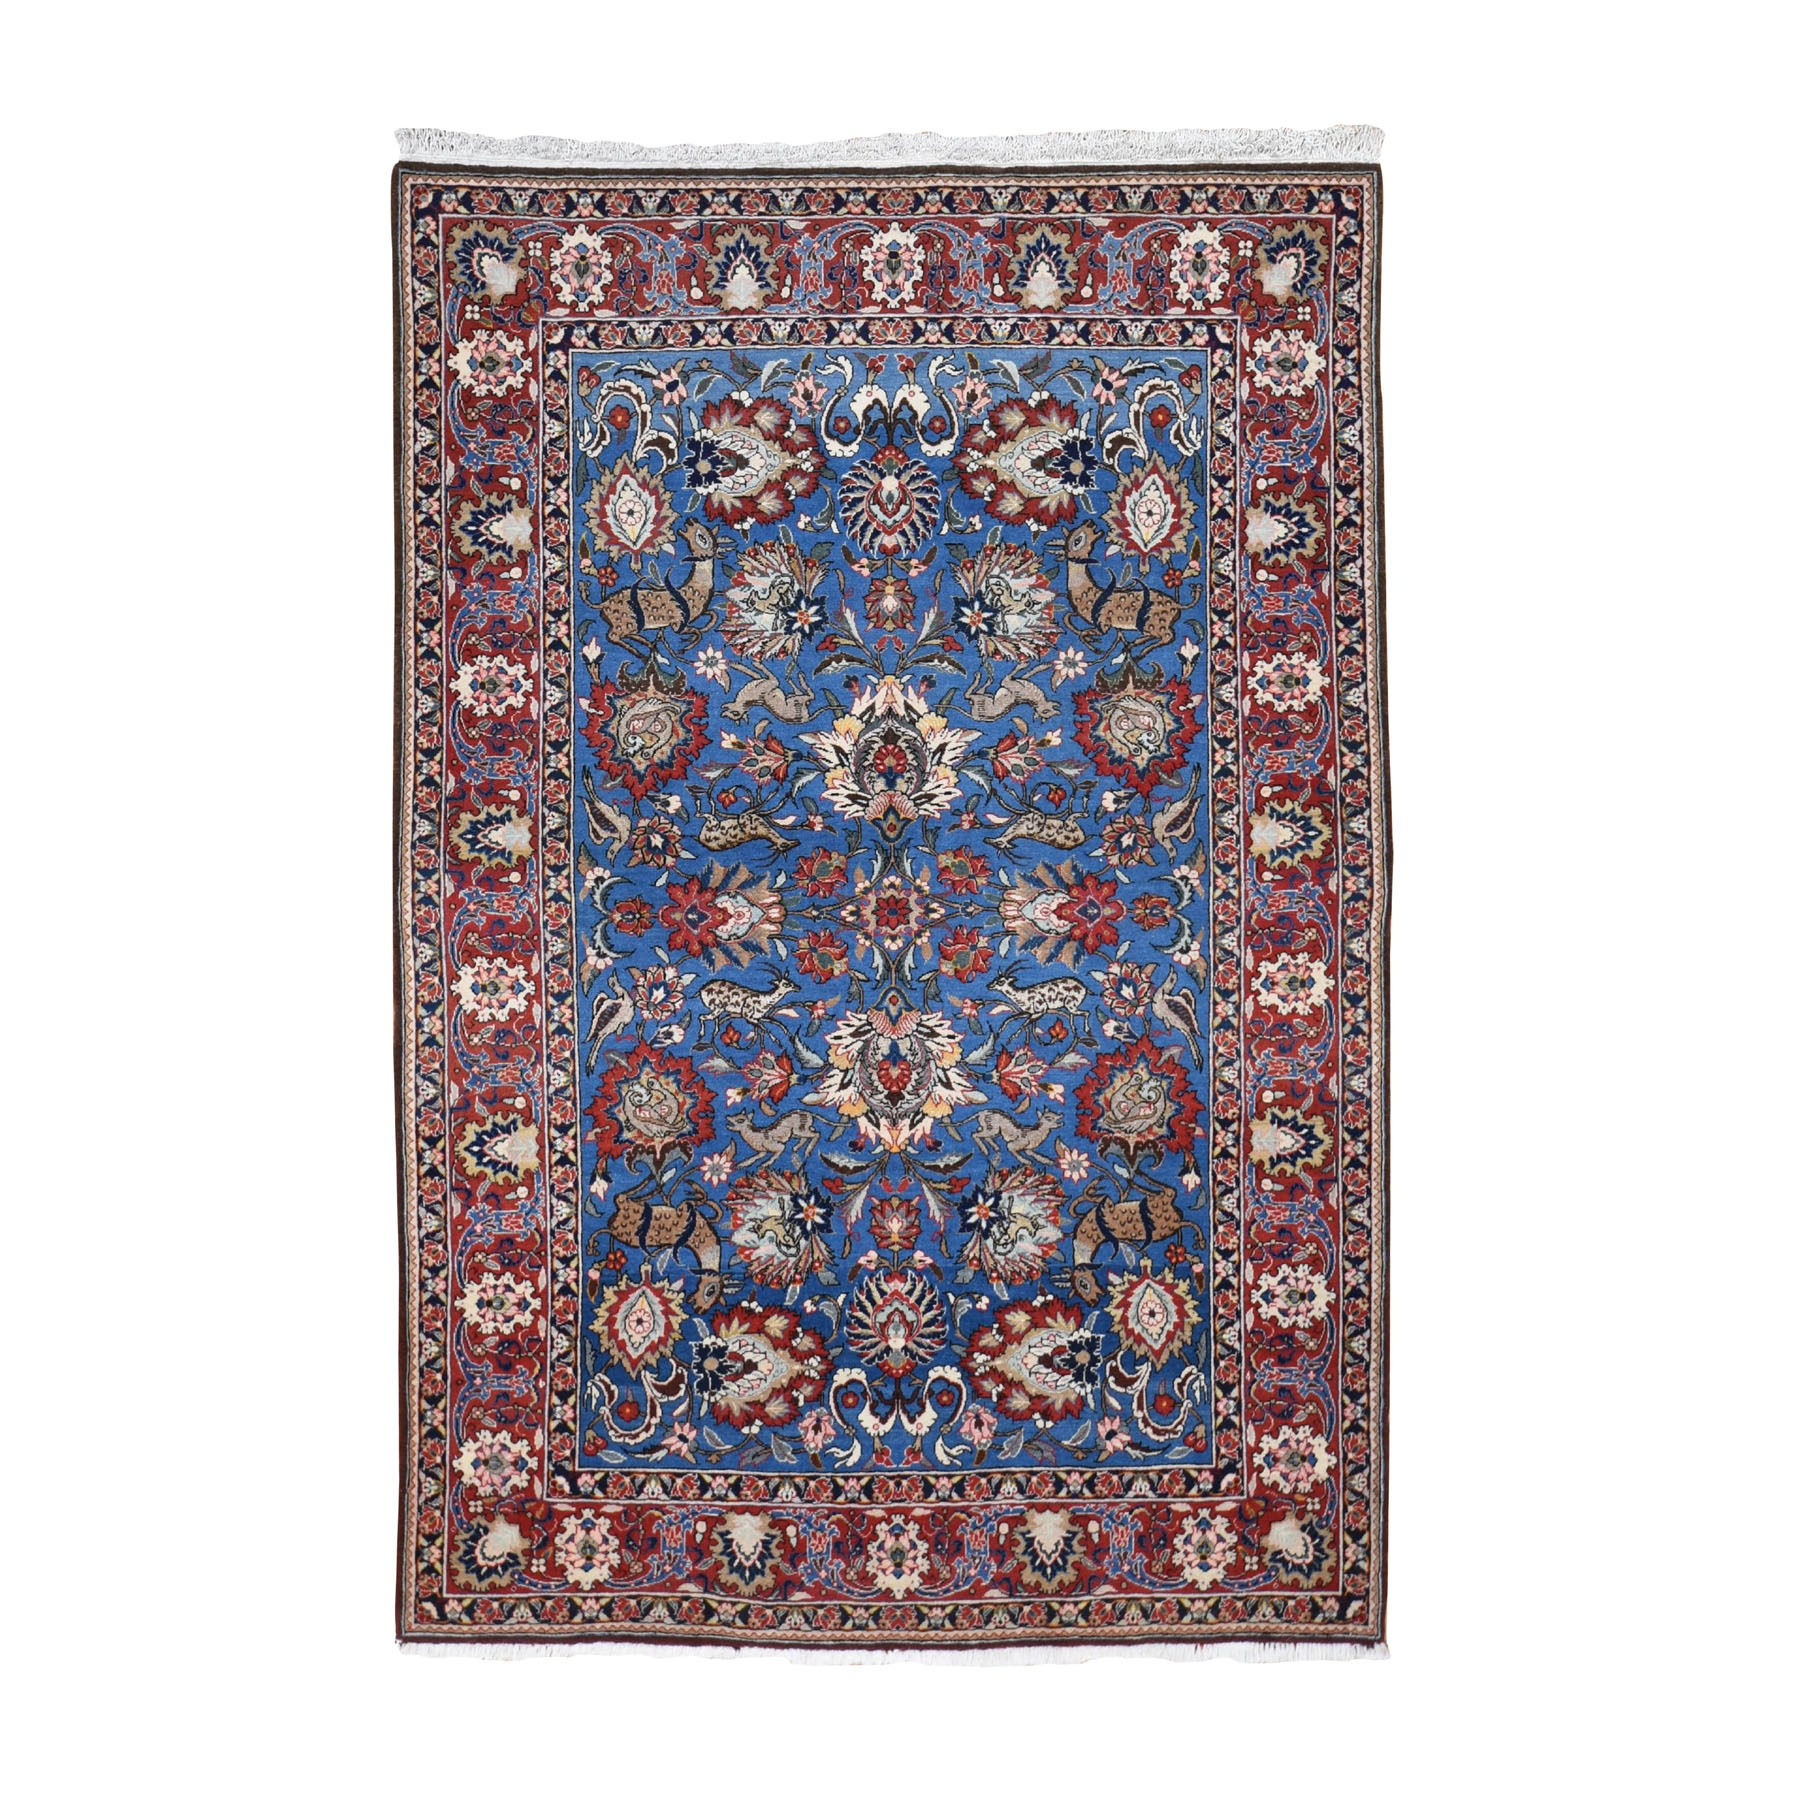 "4'8""x7' Blue Vintage Persian Qum Full Pile Exc Condition Hand Woven Oriental Rug"